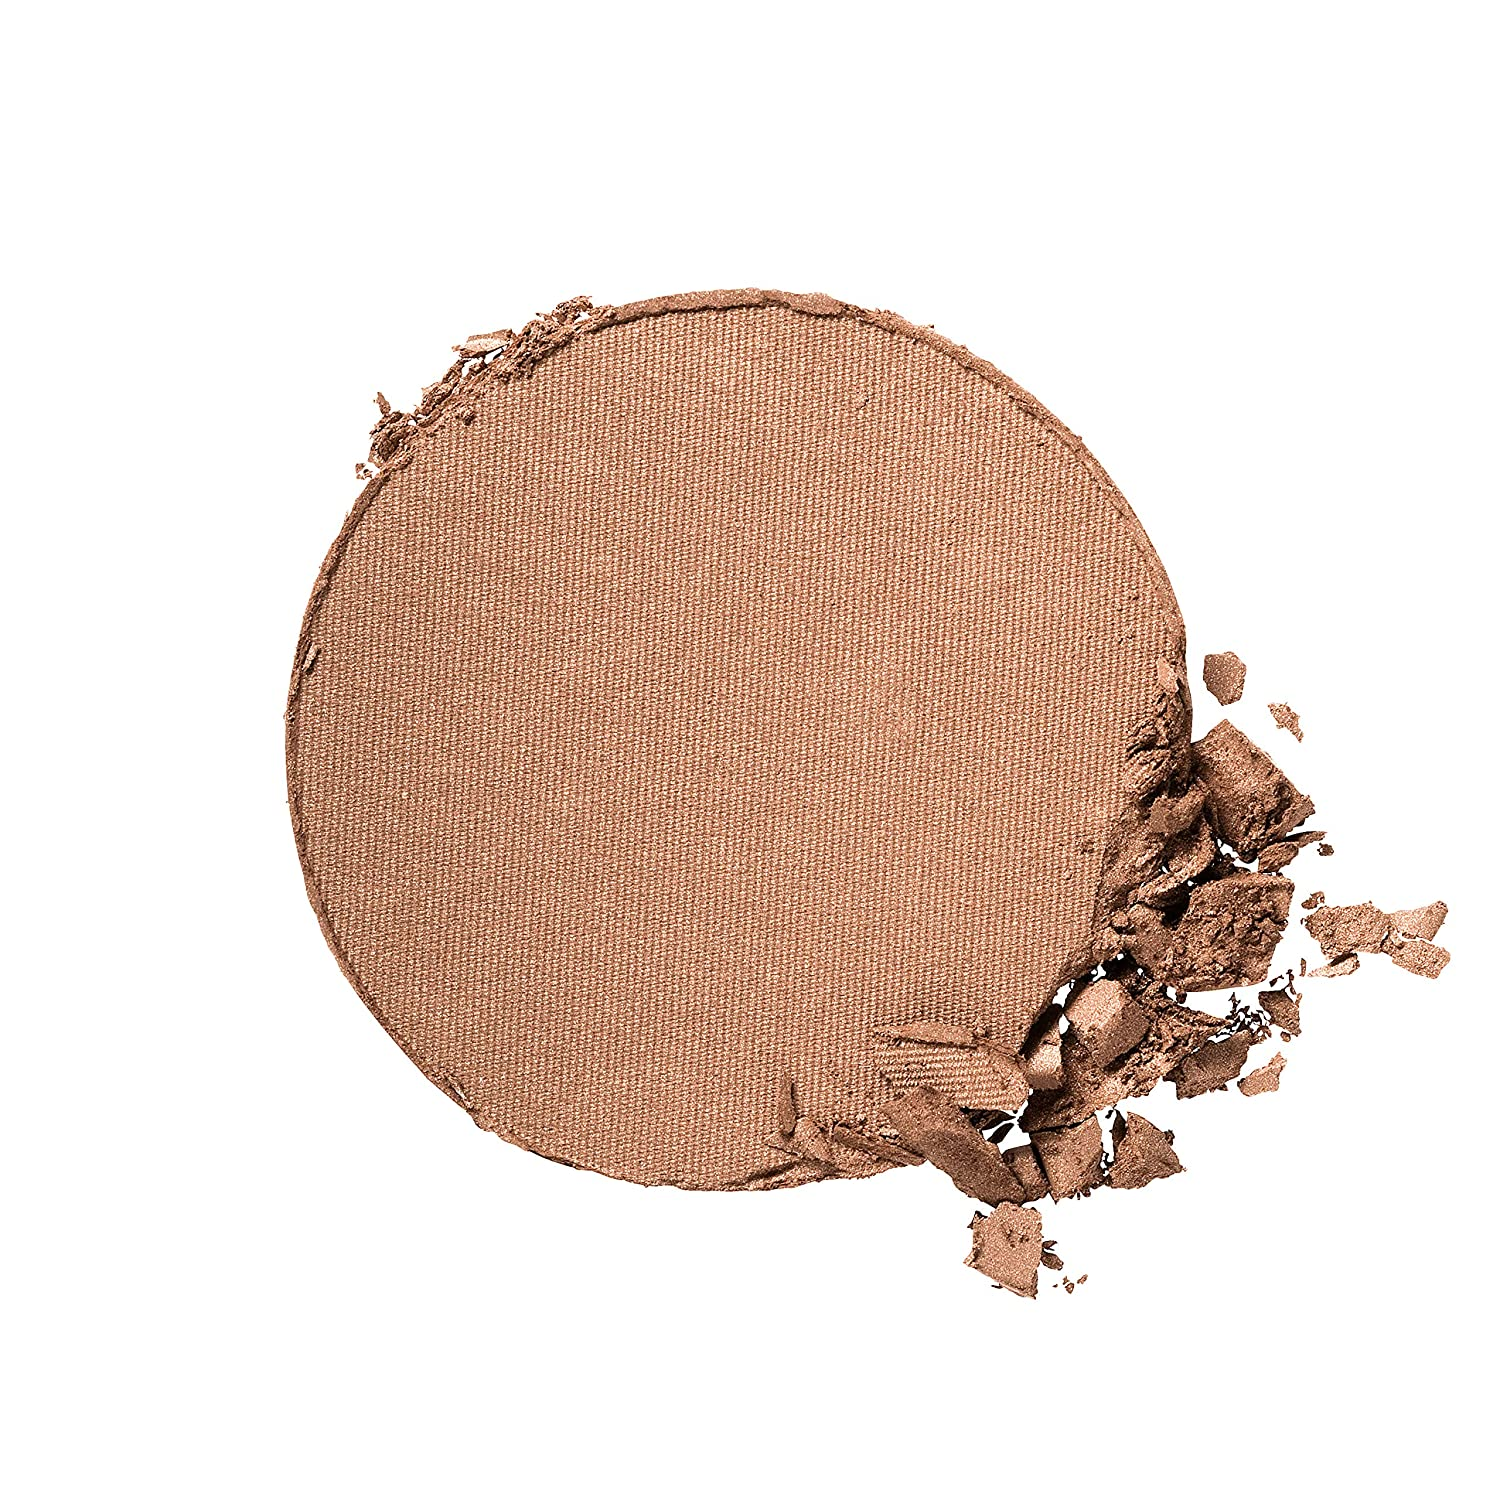 P R Mineral Glow Bronzer, 0.3 Ounce